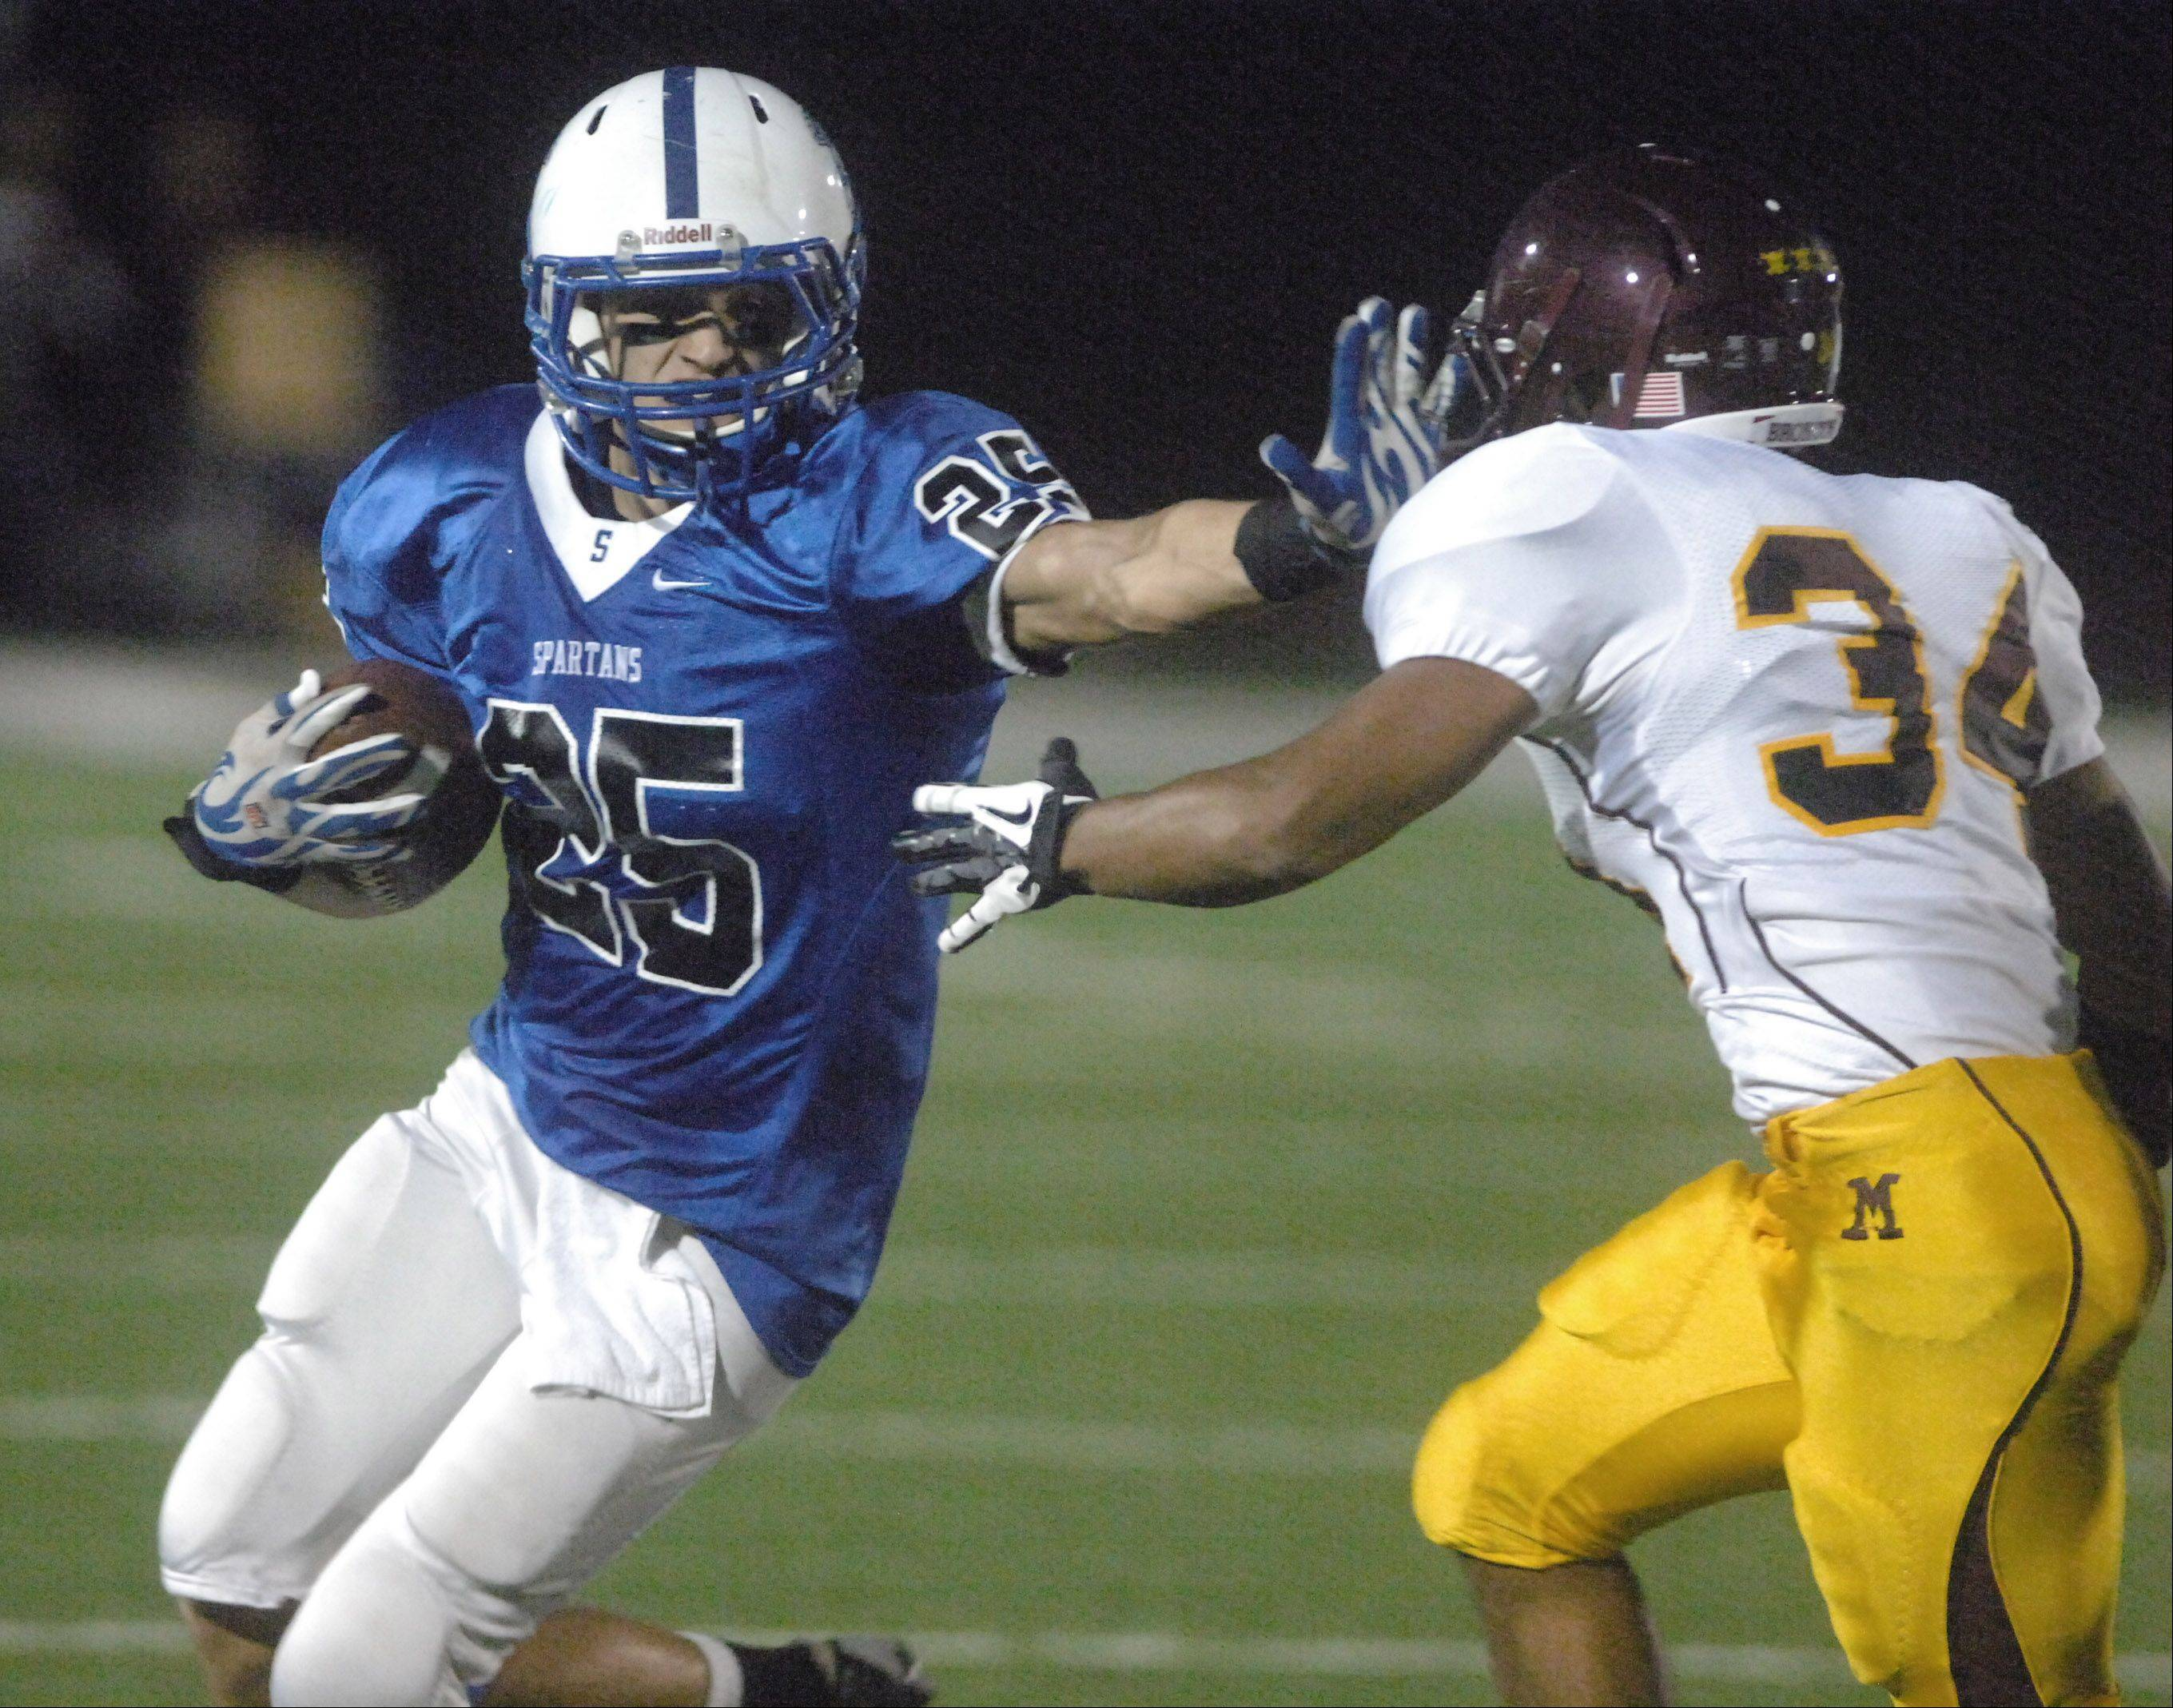 Jack Petrando of St. Francis tries to keep Josh Belt of Montini away.